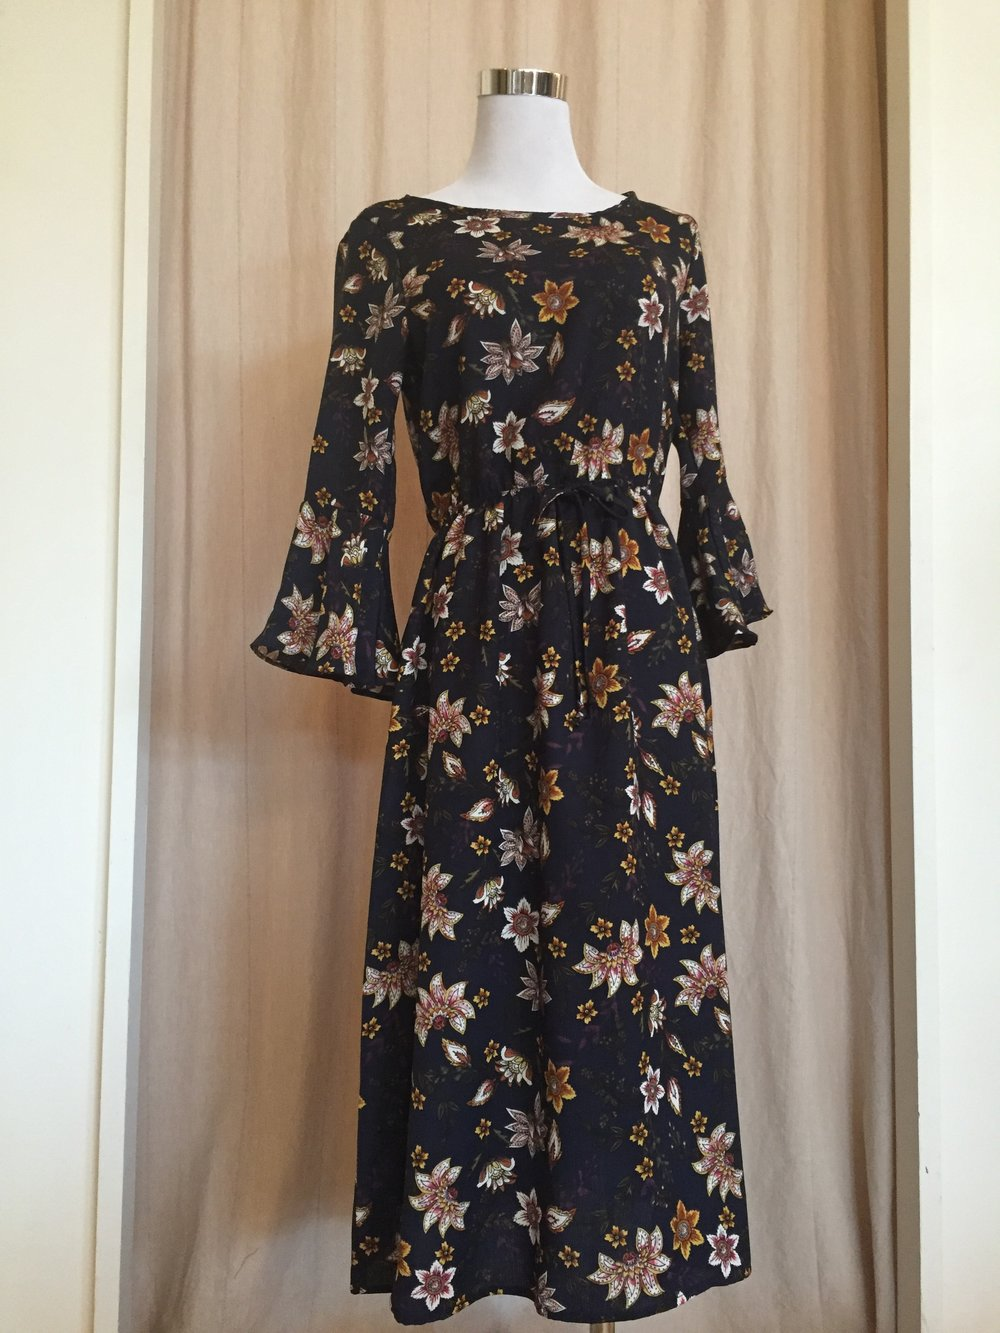 Floral Gilli Dress (Navy and Burgundy $48)